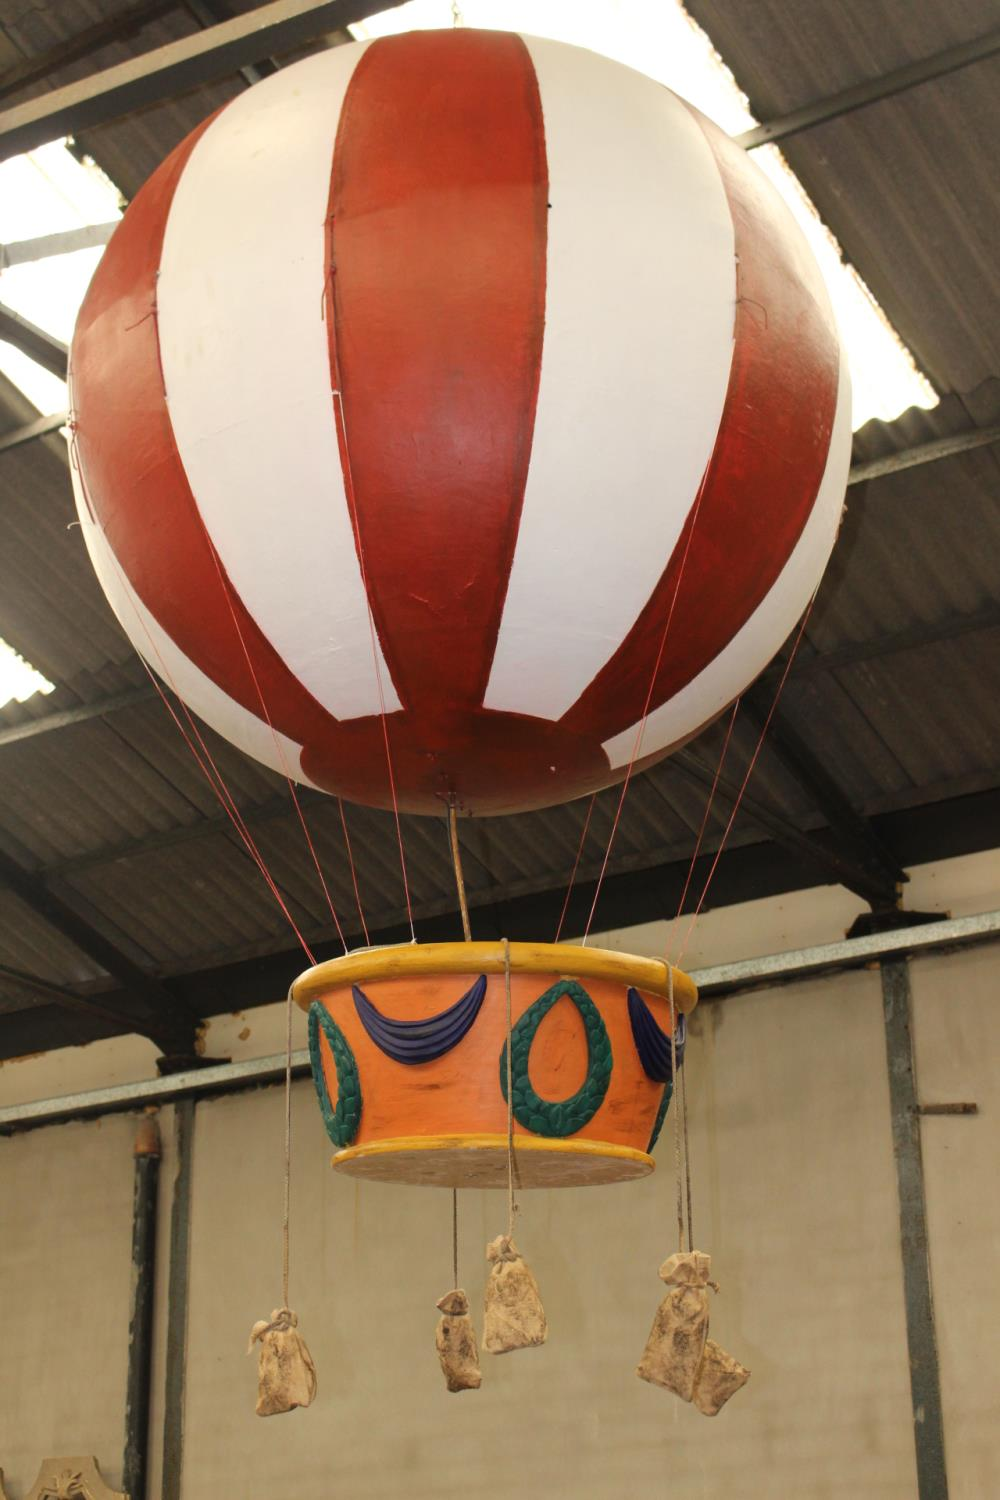 Resin model of Hot Air balloon